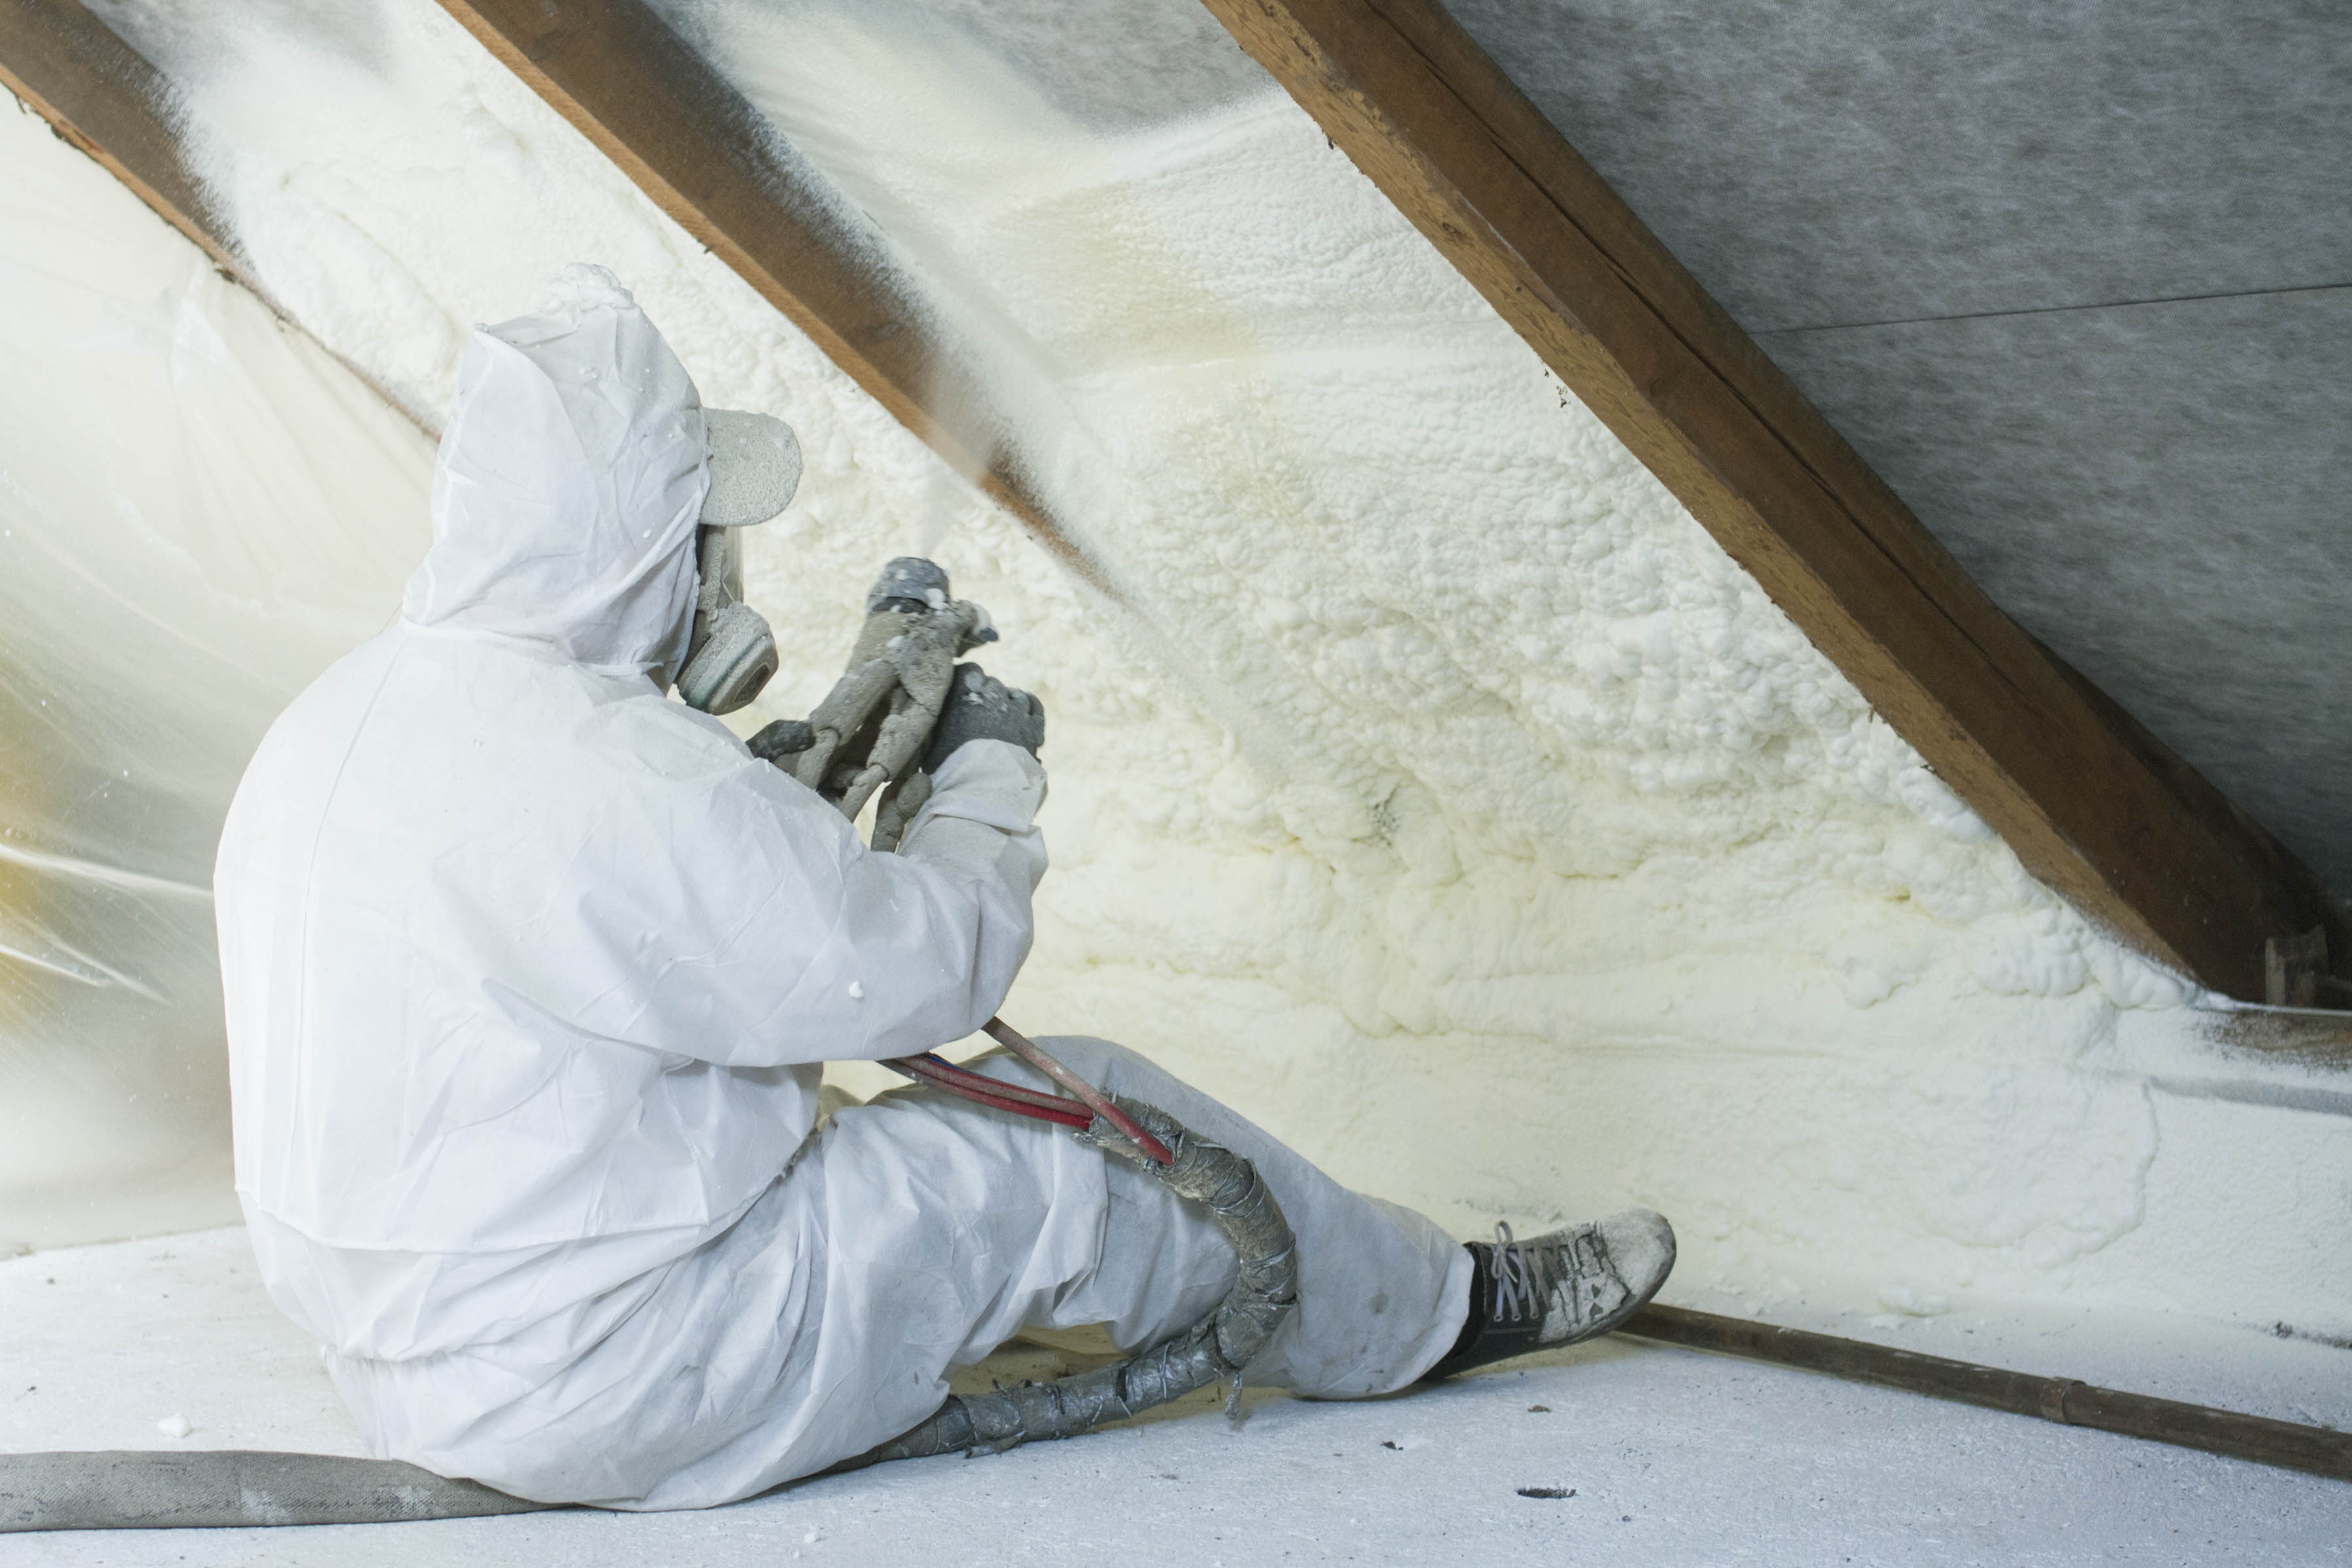 Castor Oil Based Foam For Wall Insulation: Is It Viable?